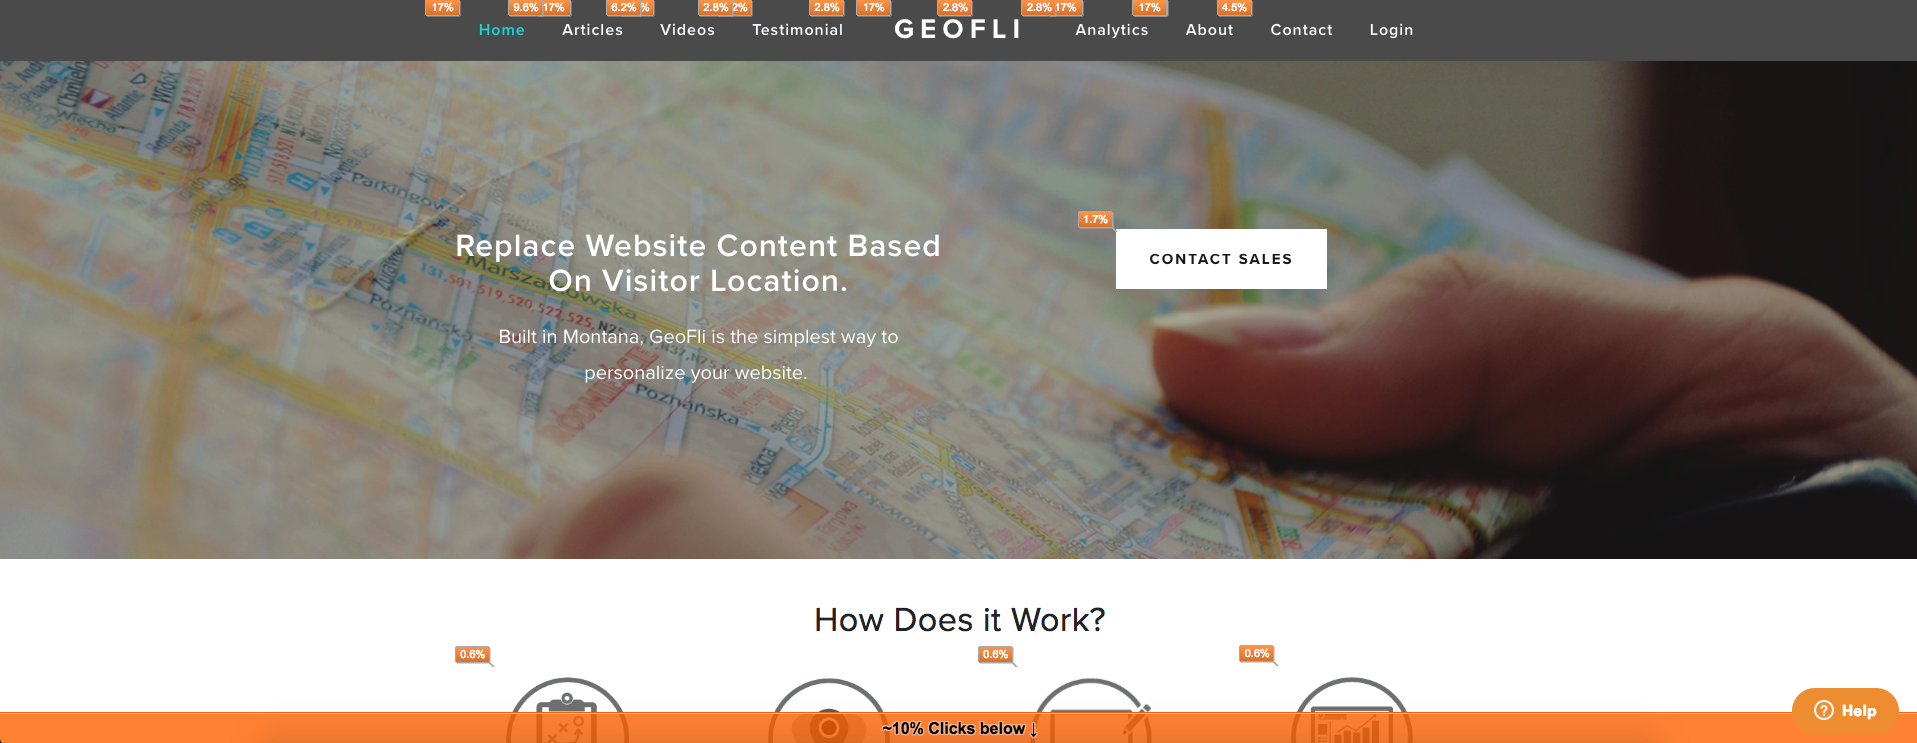 GeoFli website showcases that it is useful to know where visitors click on your site.